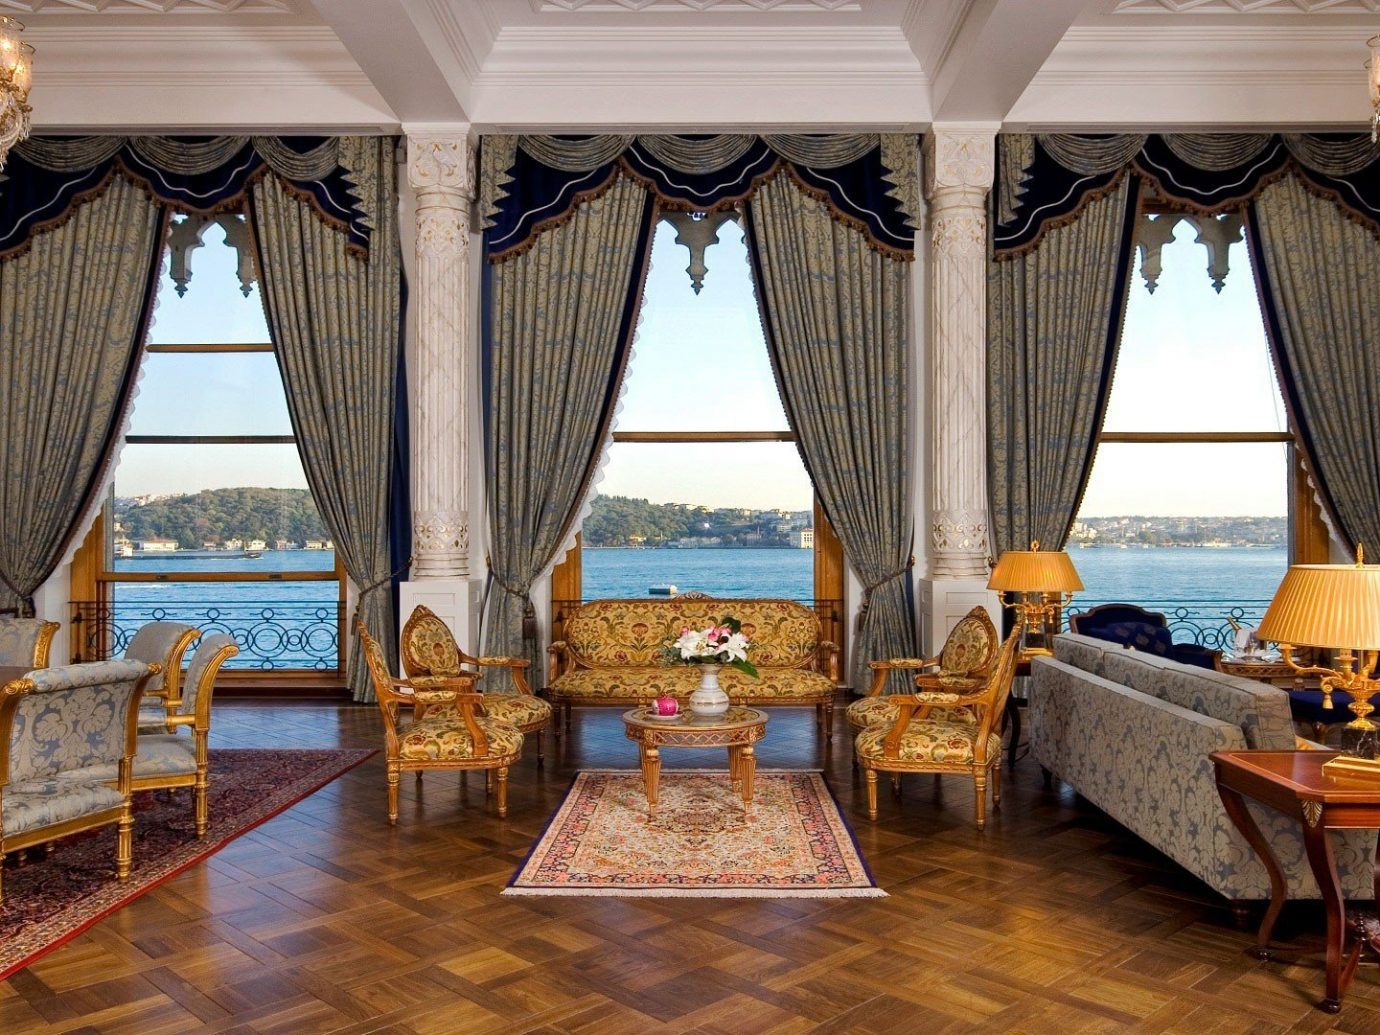 Hotels indoor floor room Living chair property estate interior design living room home Resort window treatment curtain palace furniture